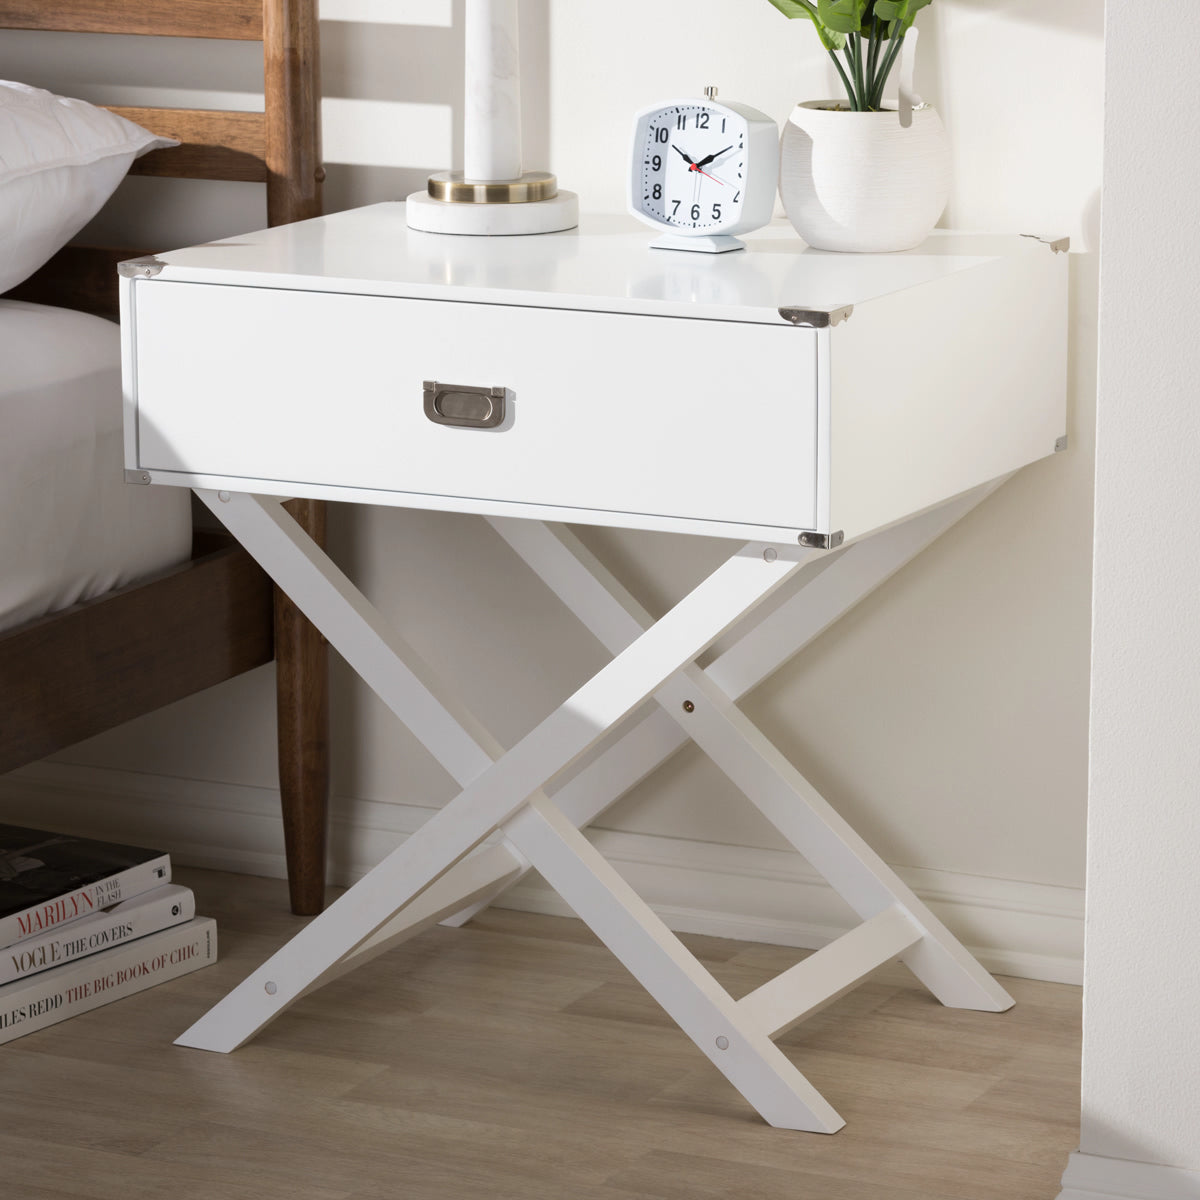 Baxton Studio Curtice Modern And Contemporary White 1-Drawer Wooden Bedside Table Baxton Studio-nightstands-Minimal And Modern - 1